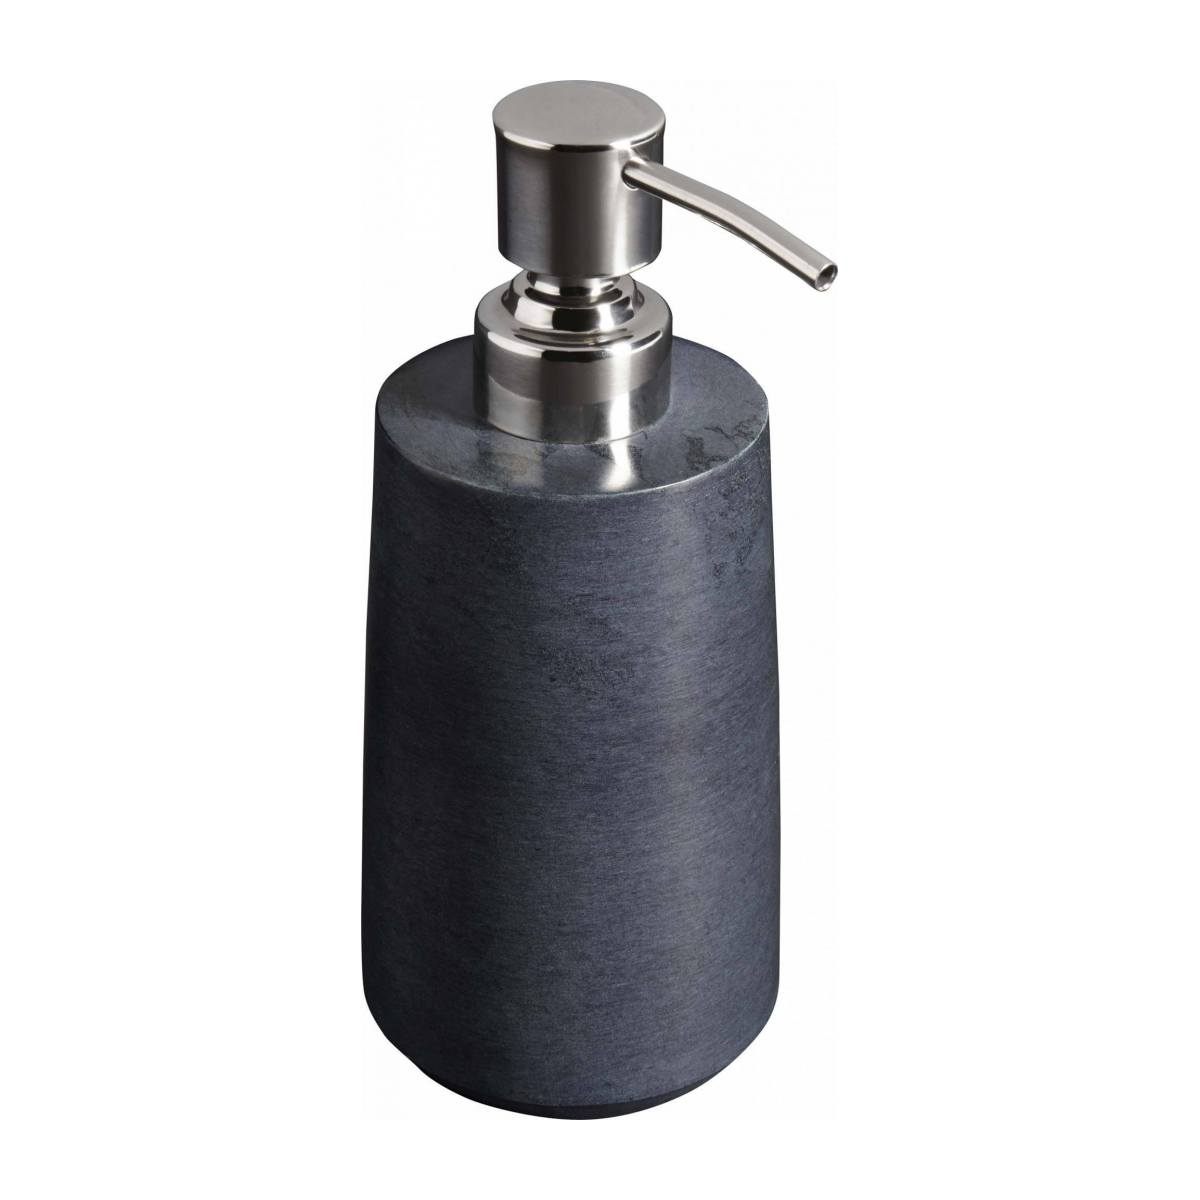 Grey soapstone soap dispenser n°1